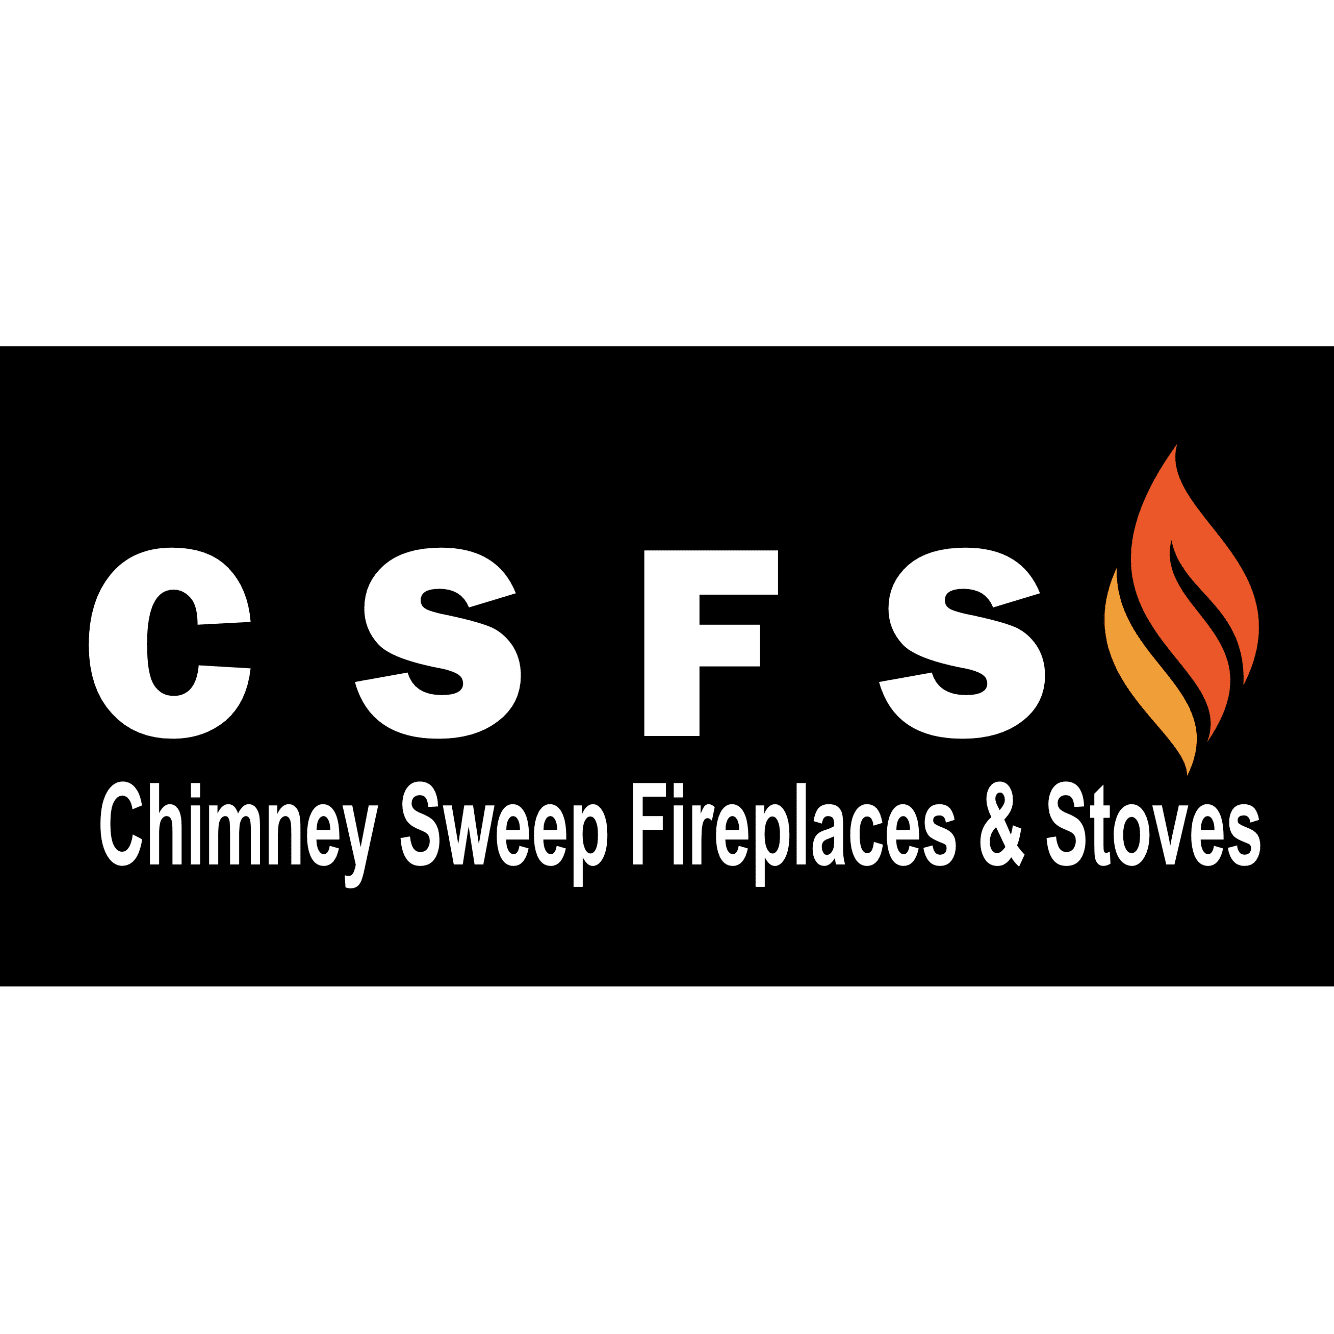 Chimney Sweep Fireplaces & Stoves CSFS - Stoke-On-Trent, Staffordshire ST3 1SX - 07415 283865 | ShowMeLocal.com